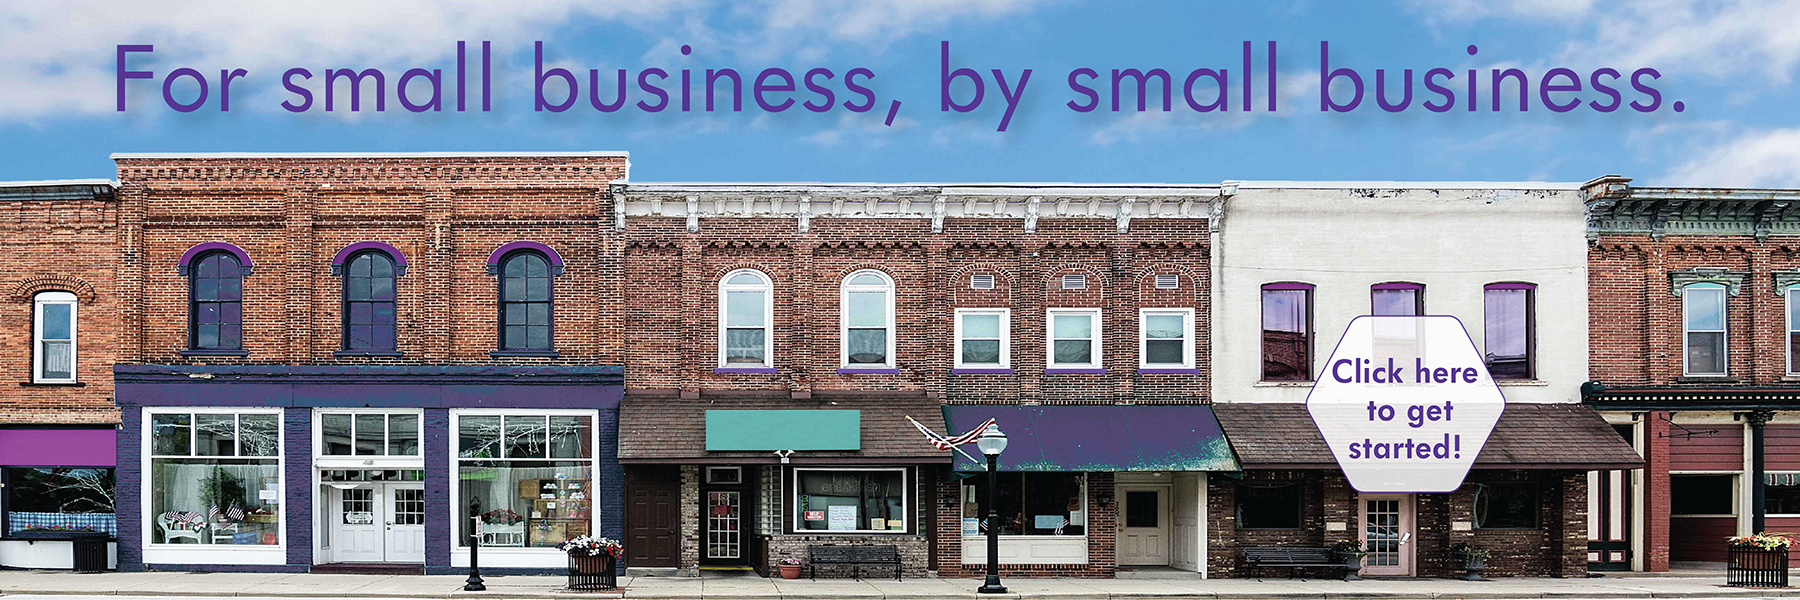 Small businesses along Main Street